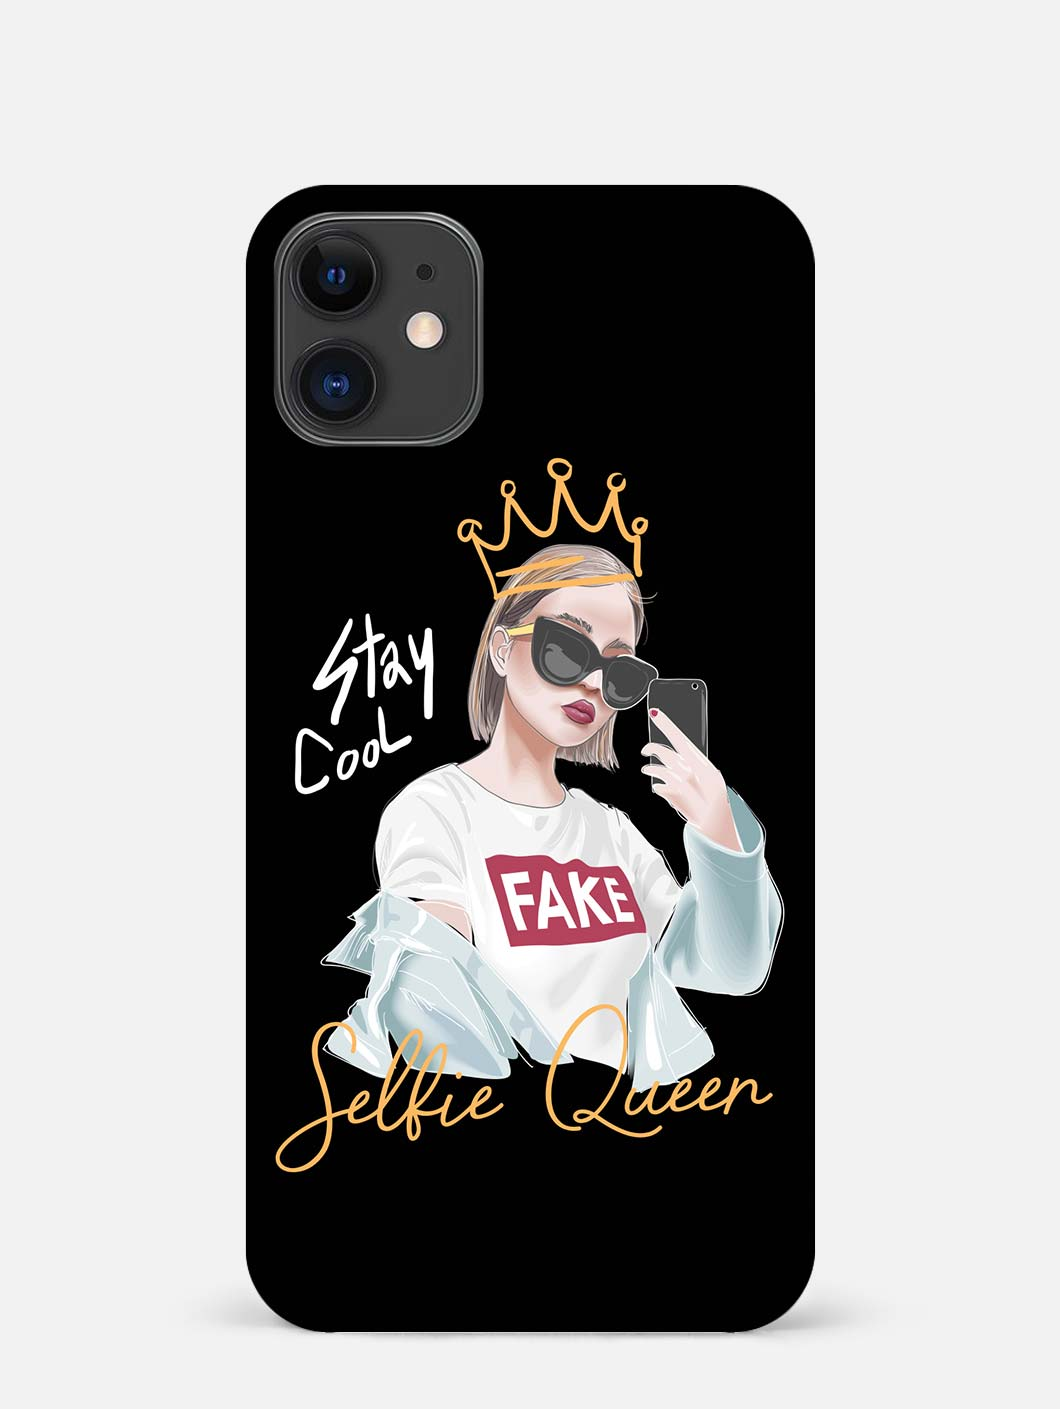 Selfie Queen iPhone 12 Mini Mobile Cover